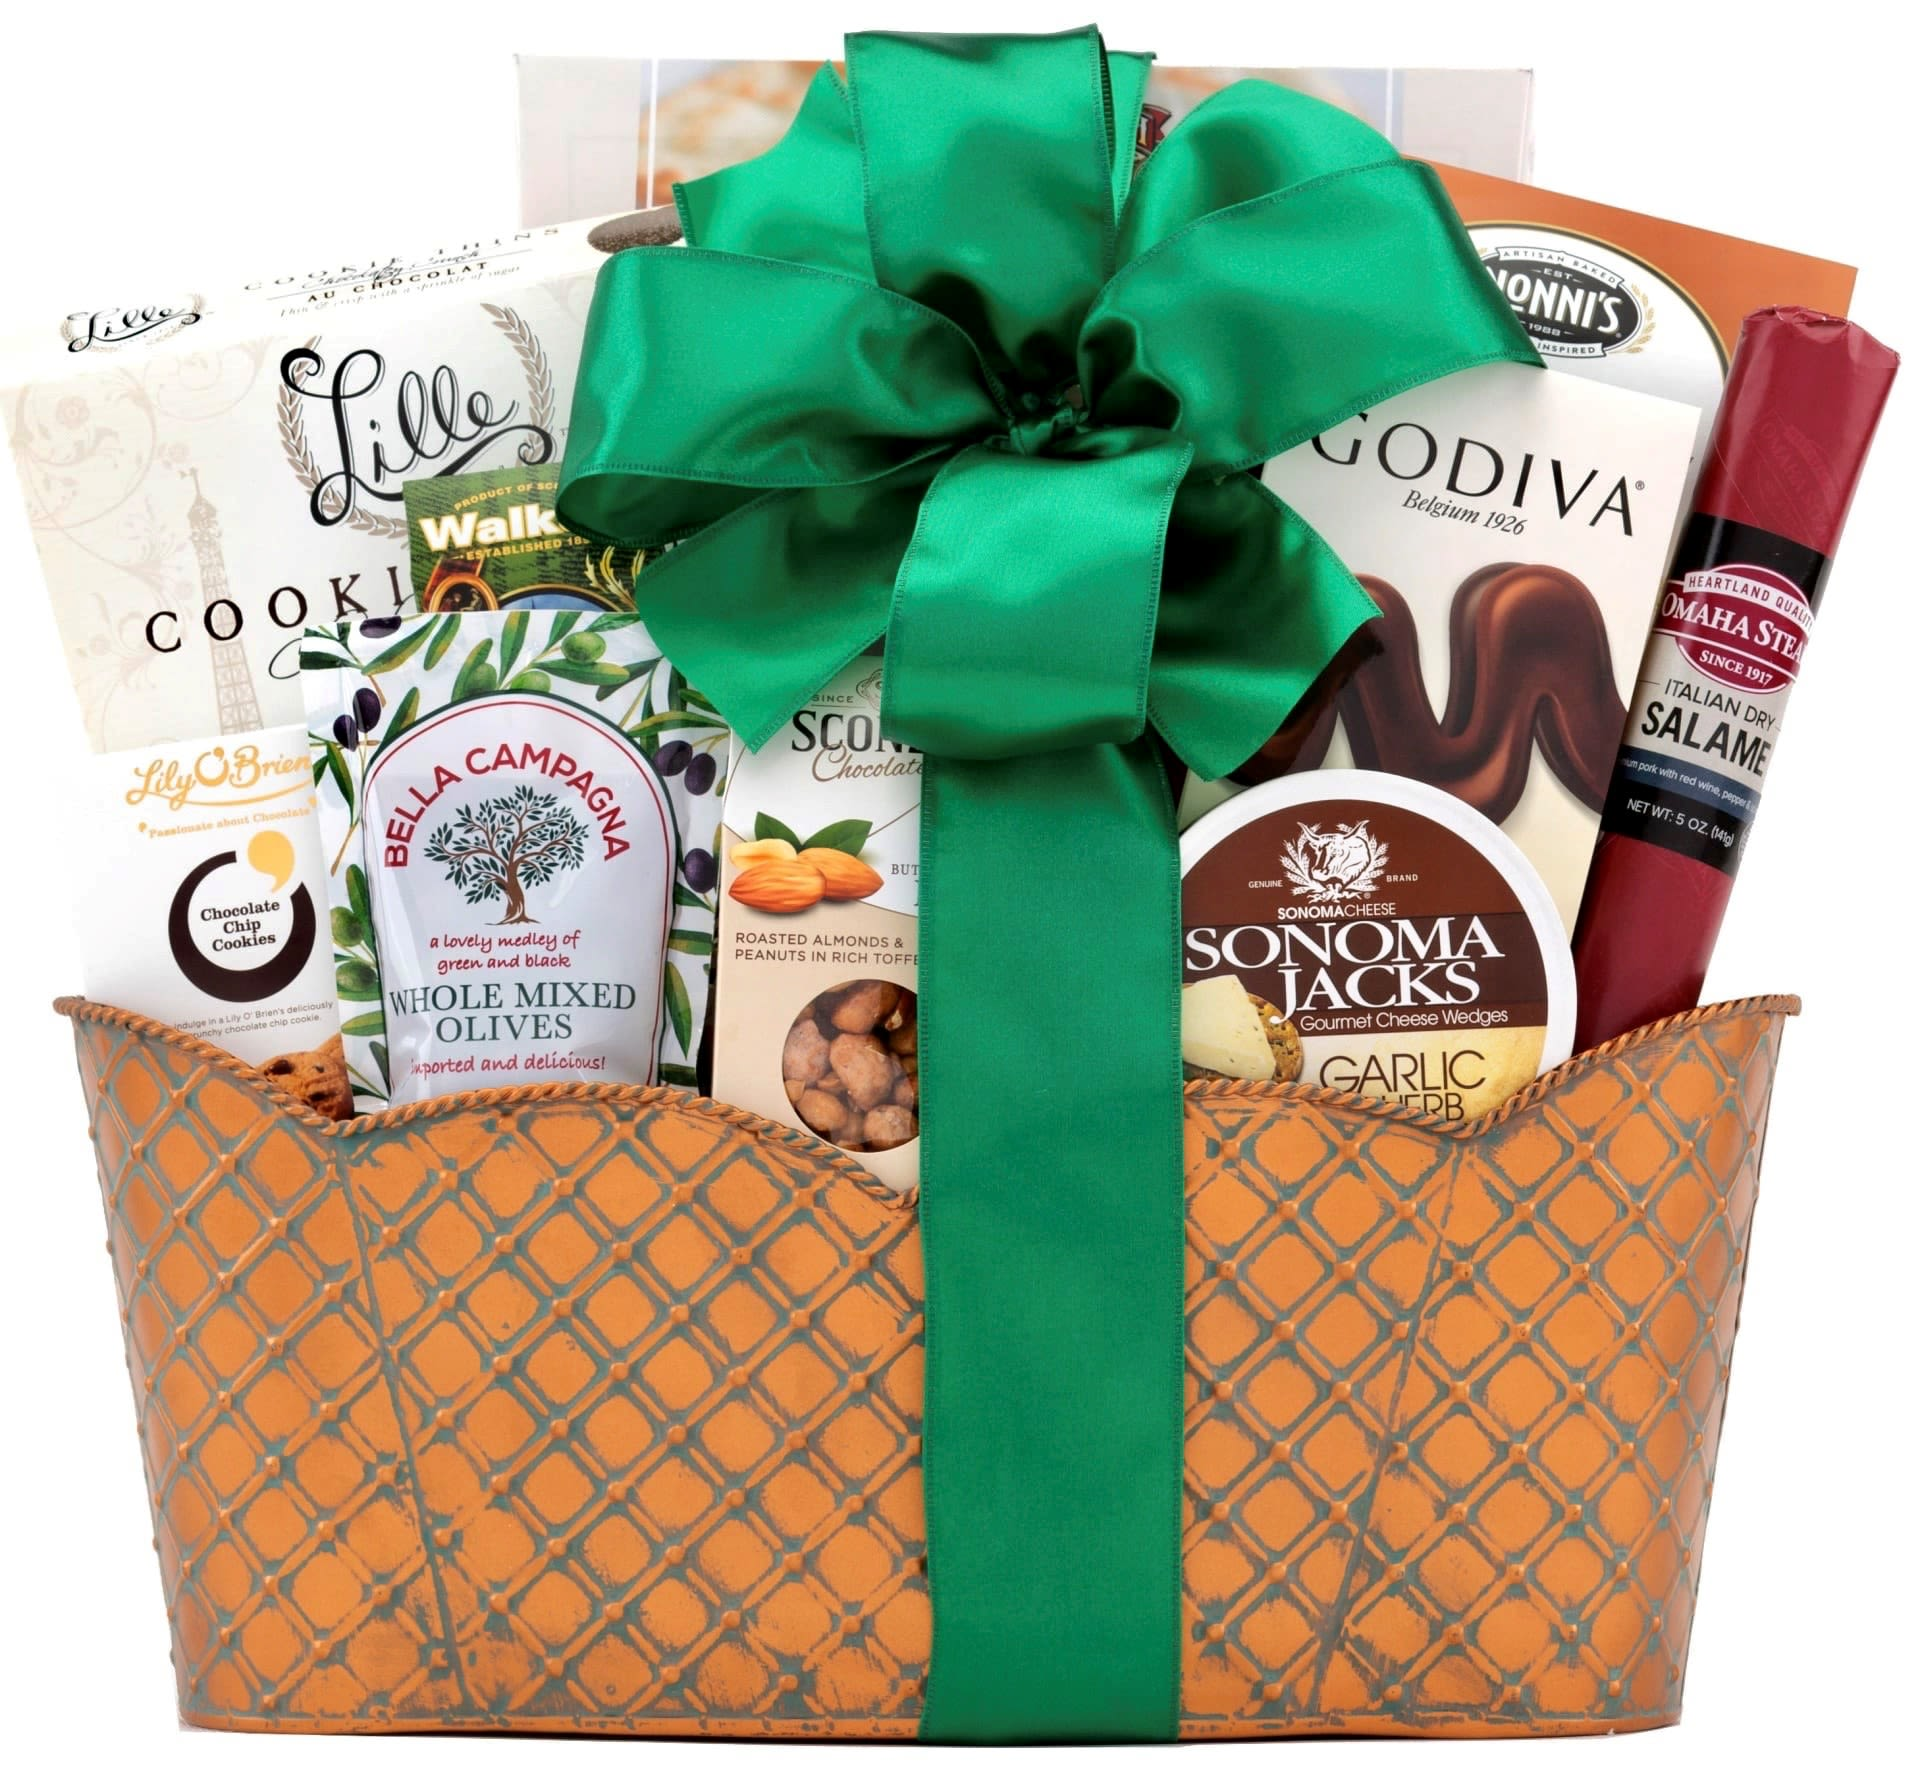 wine.com The Connoisseur Gift Basket  Gift Product Image